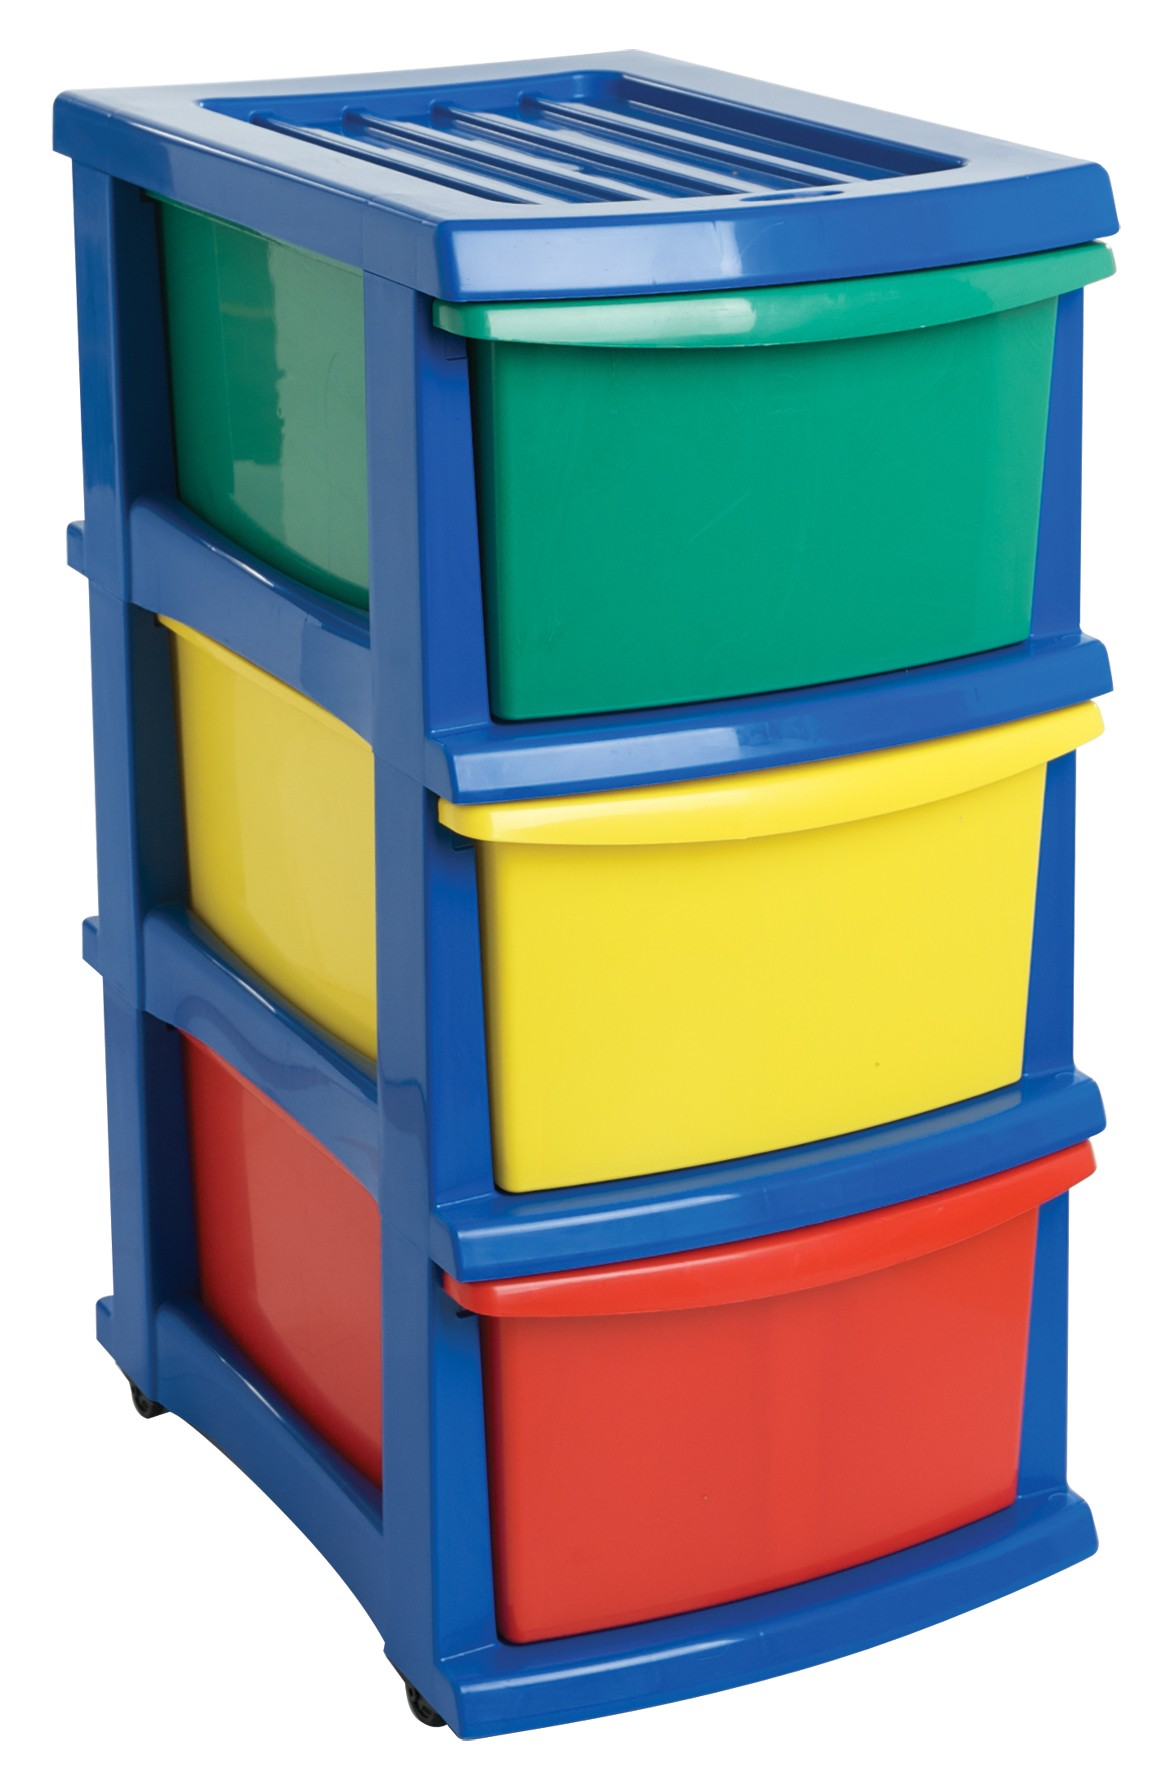 Plastic A3 Unit 3 Drawer Coloured From Storage Box